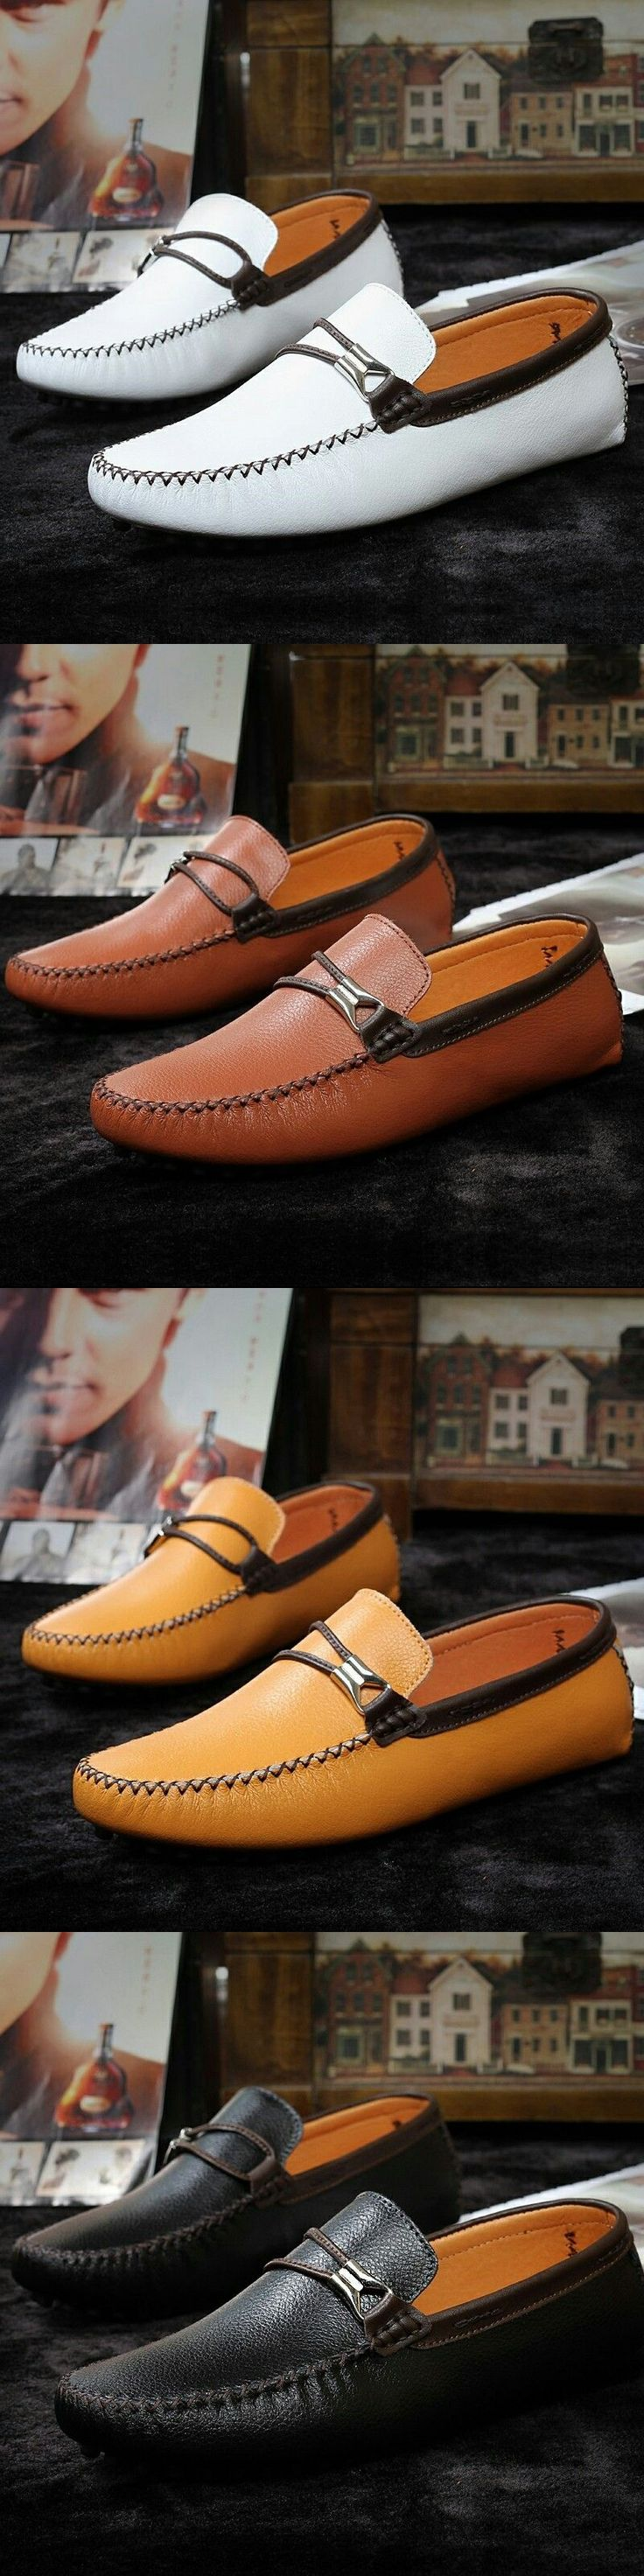 US $25 Prelesty Gorgeous Luxury Leather Boat Shoes Mens Top Sider Driving Shoes - https://sorihe.com/mensshoes/2018/03/10/us-25-prelesty-gorgeous-luxury-leather-boat-shoes-mens-top-sider-driving-shoes/